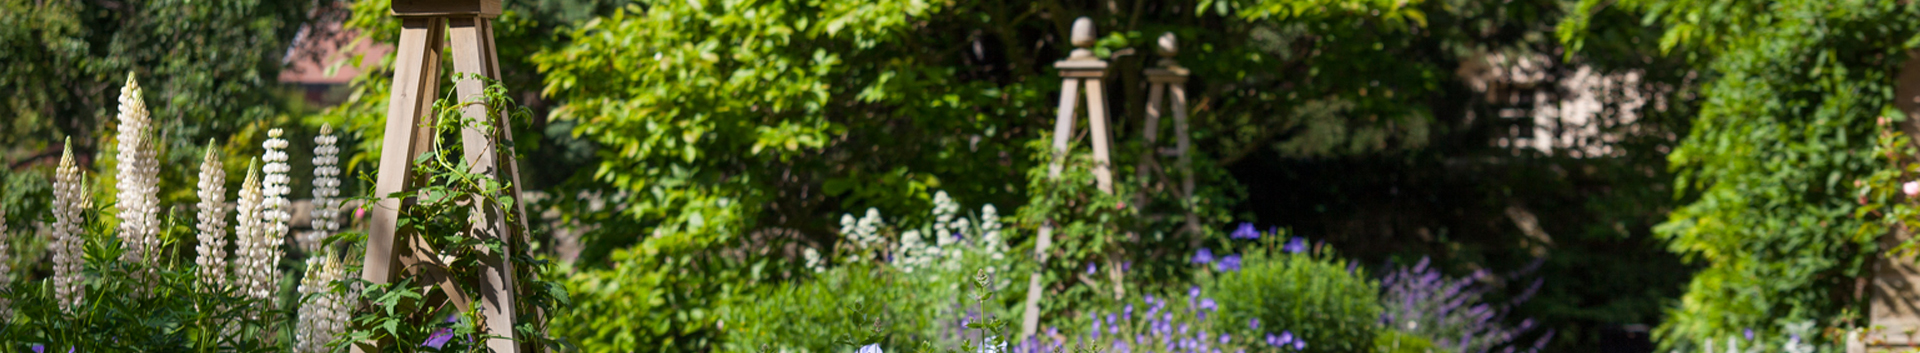 Make Your Garden Your Home - mixed planting